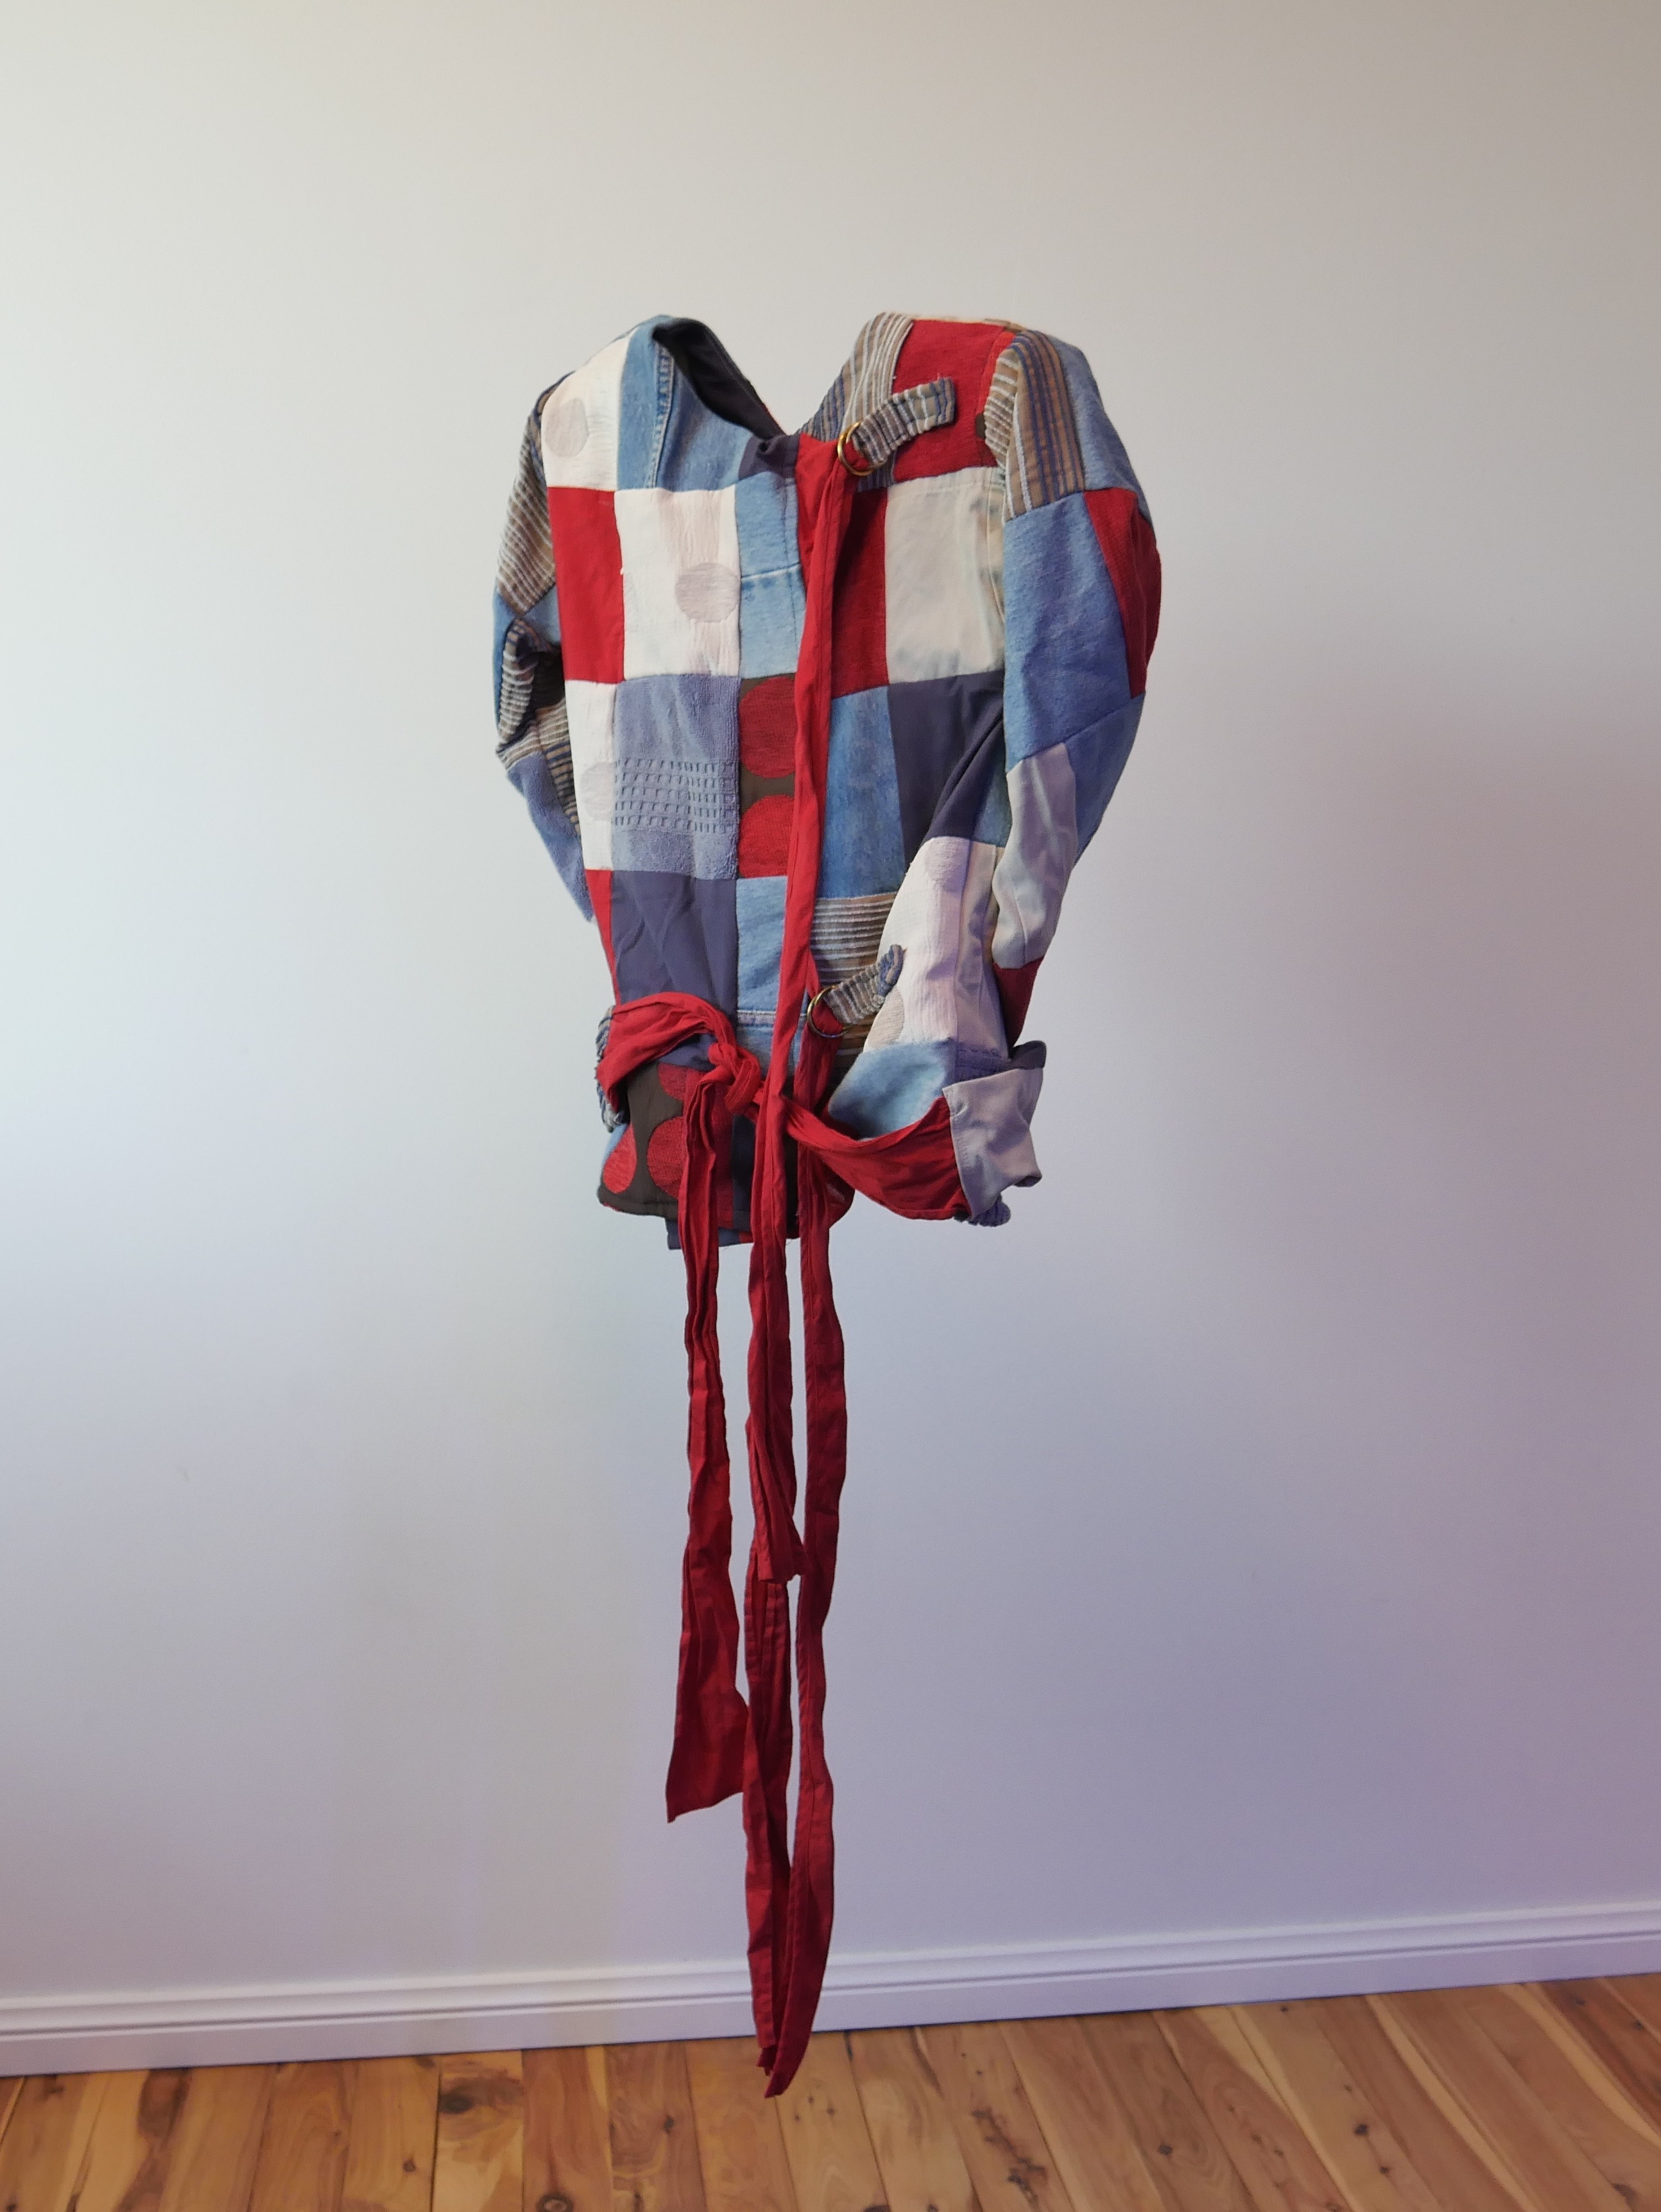 Life Jacket (Installation view)